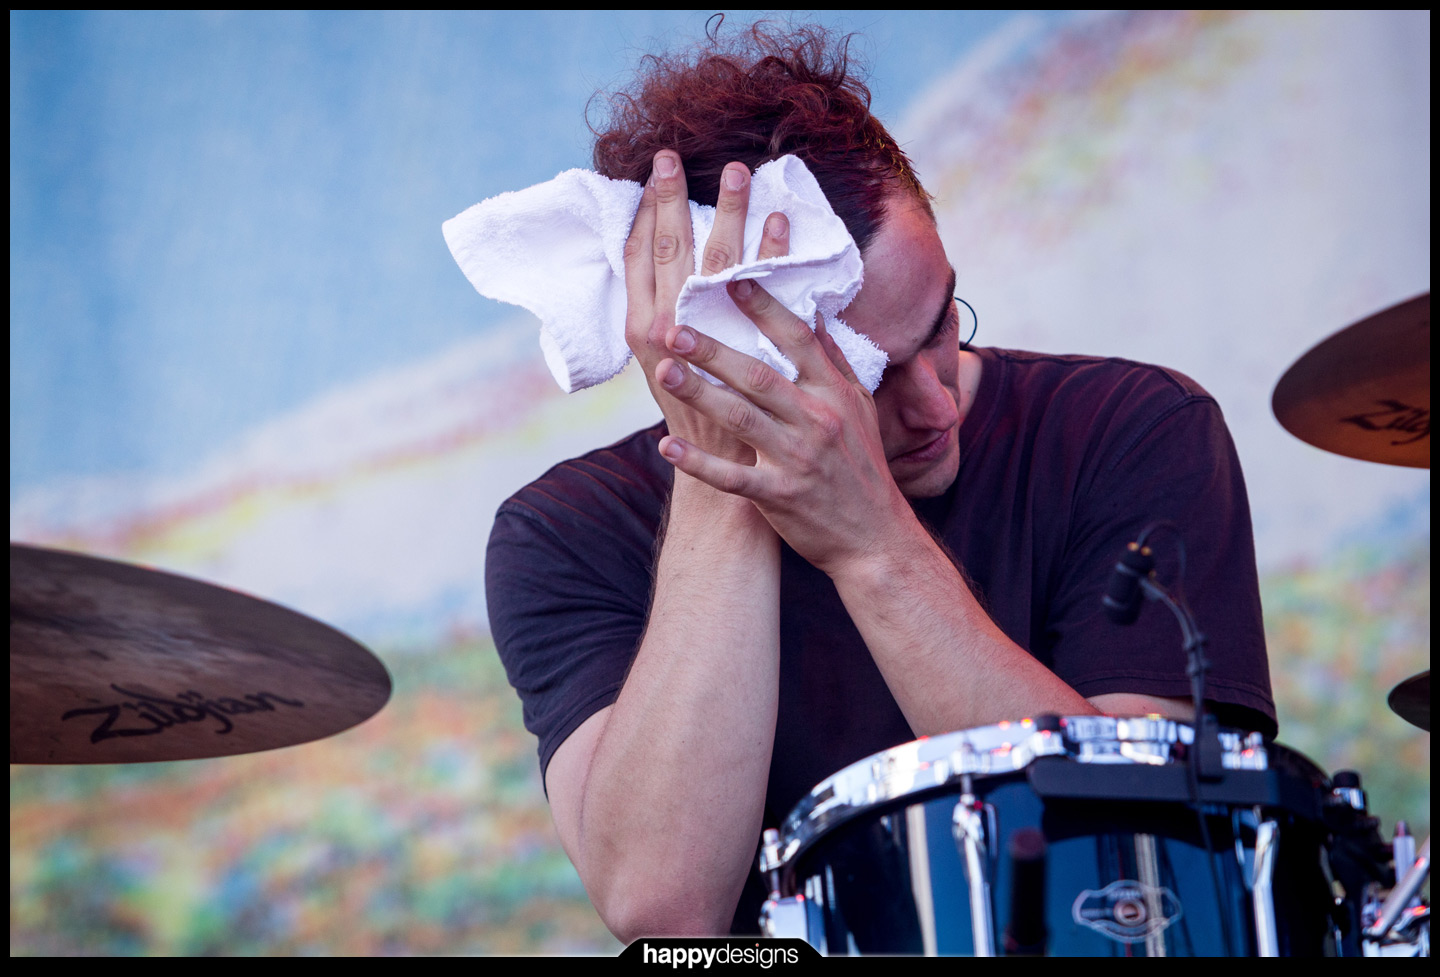 20120925 - the drummers of R5-0006